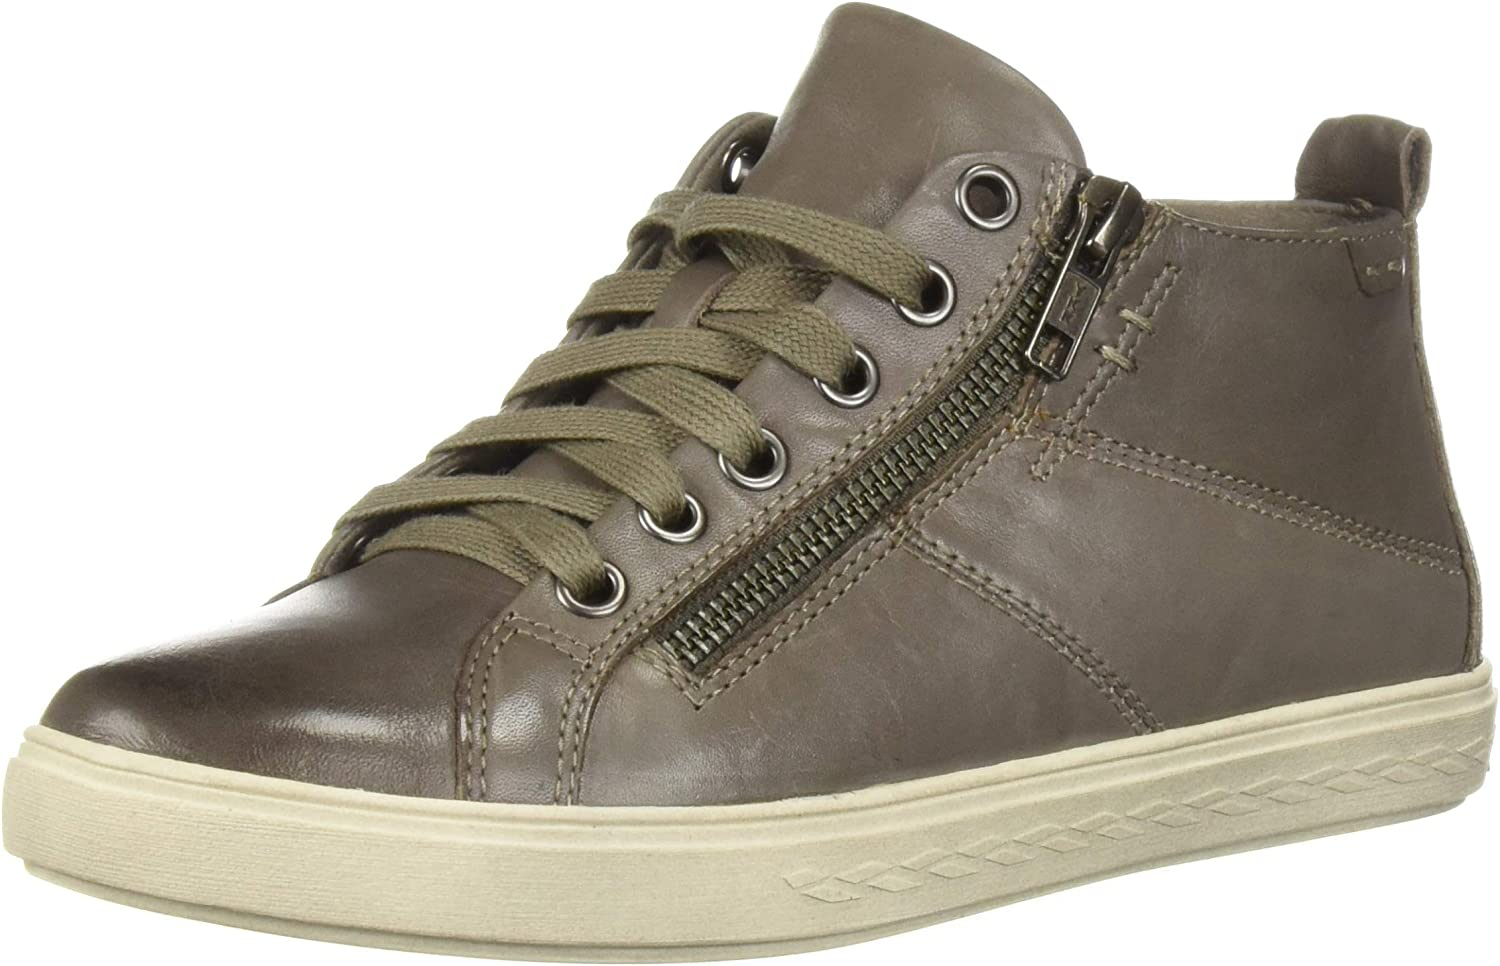 Cobb Hill Damen Willa High Top Turnschuh, graues Leder, 38.5 EU